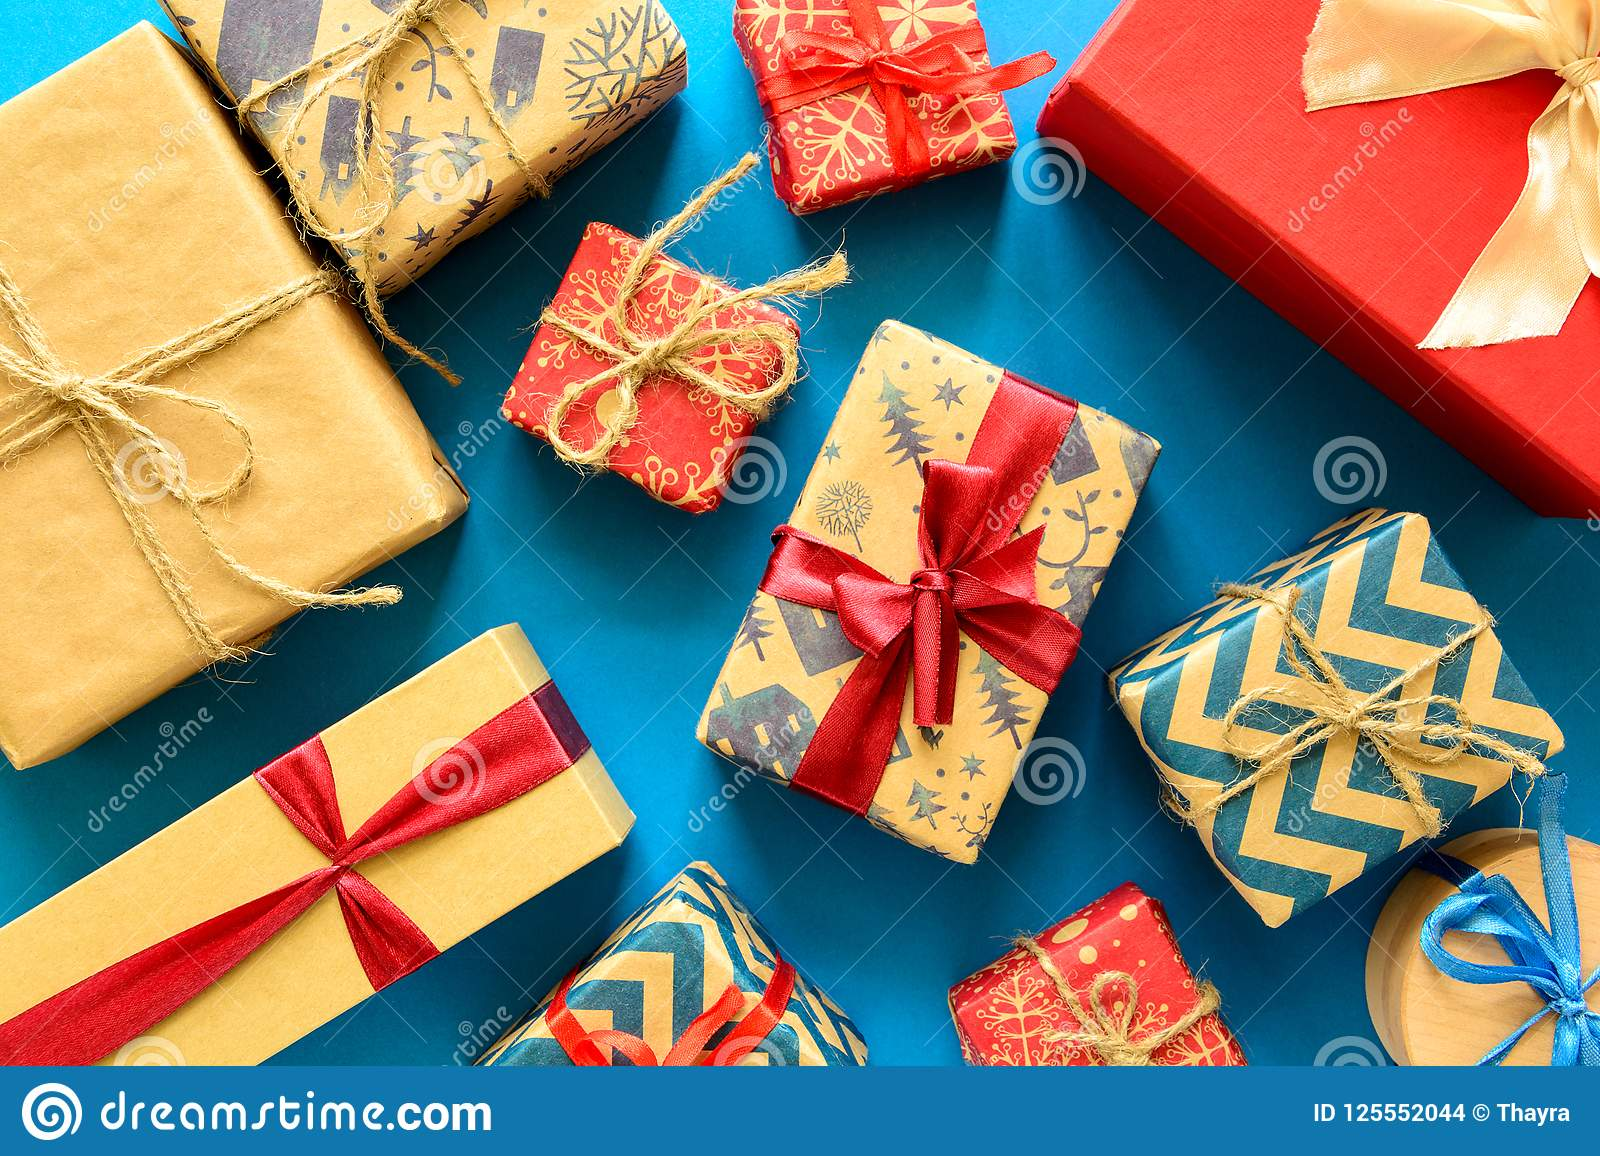 Top View On Christmas Gifts Wrapped In Gift Paper Decorated With ...